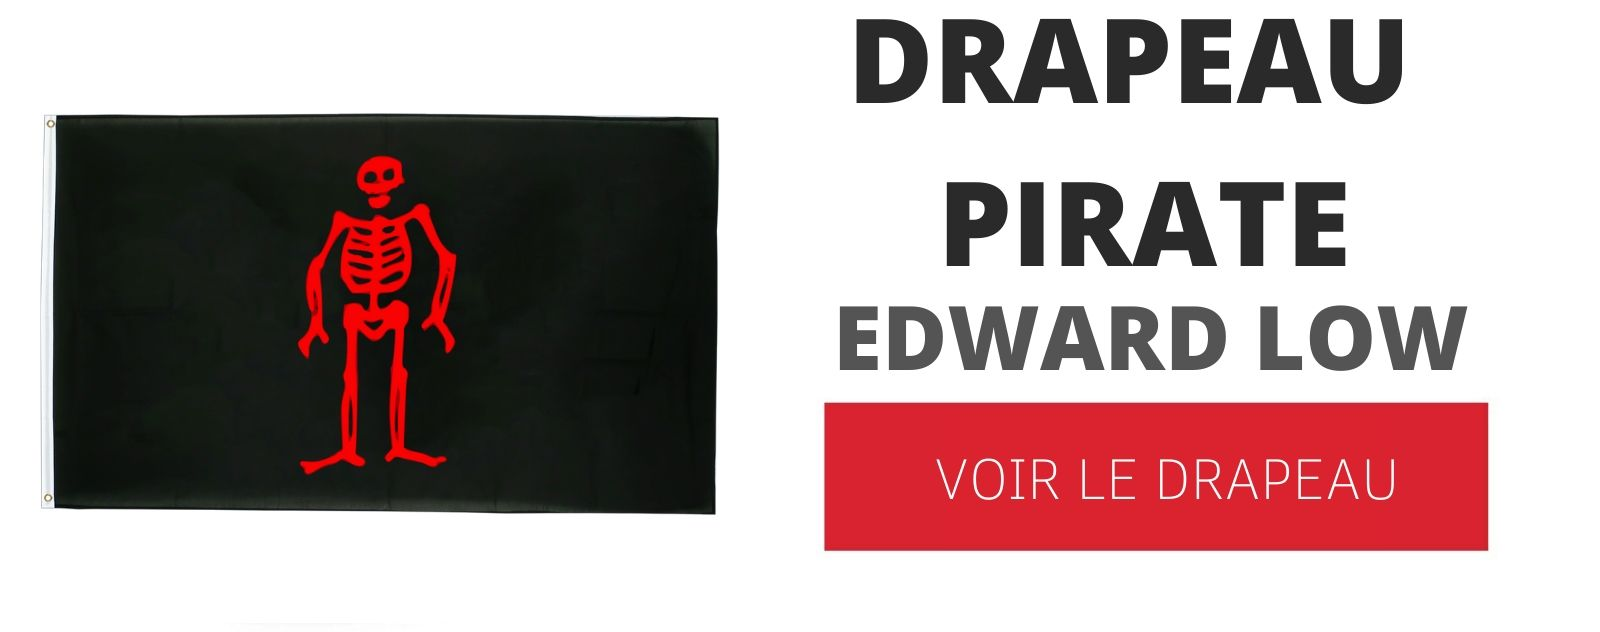 DRAPEAU PIRATE EDWARD LOW